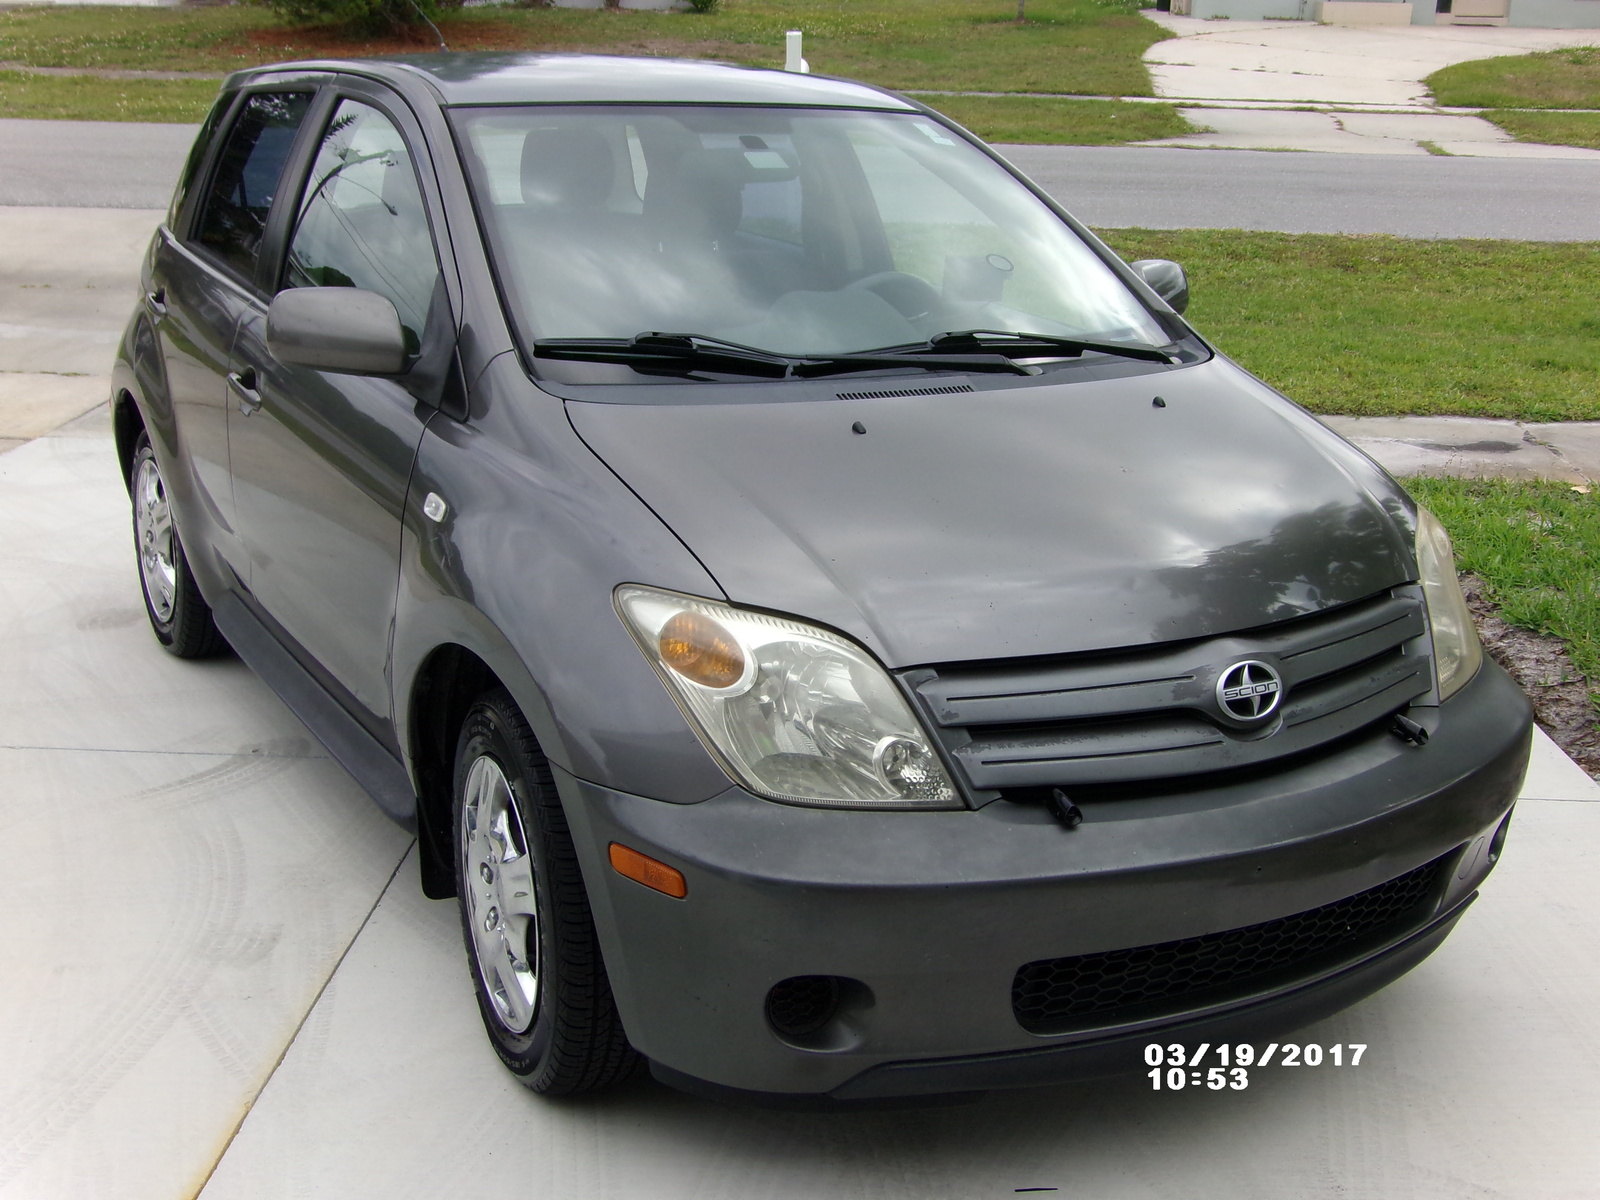 Ford Lincoln Of Franklin >> 2004 Scion xA - Overview - CarGurus